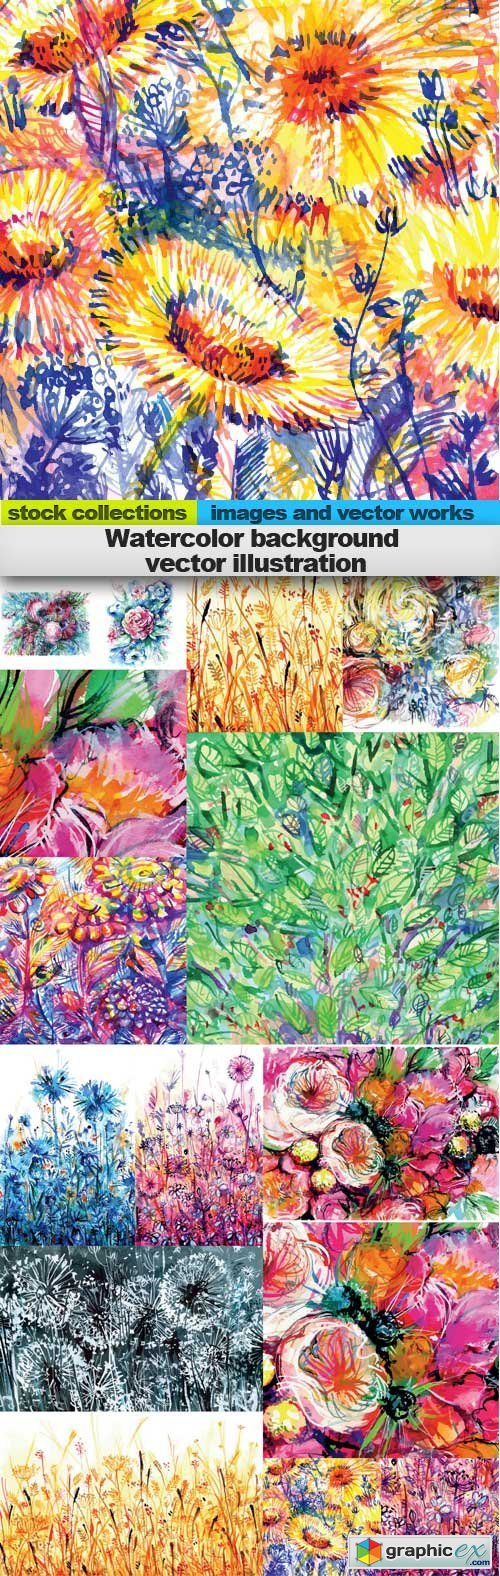 Watercolor background vector illustration, 15 x EPS